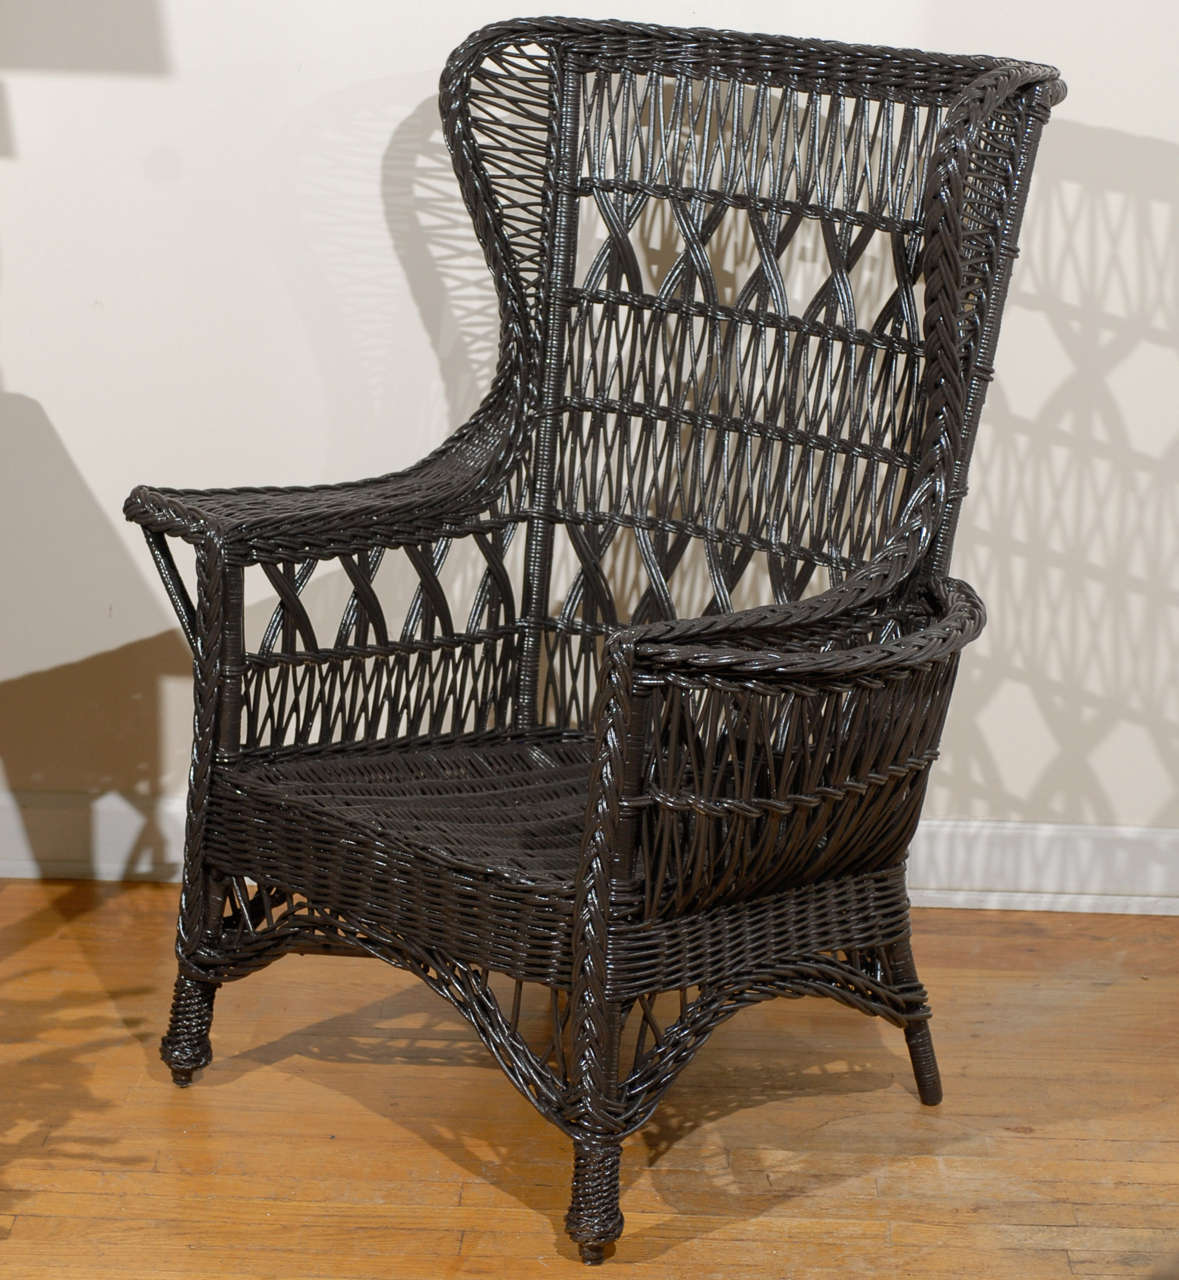 Antique Wicker Chairs Antique American Wicker Wing Chair With Magazine Pocket At